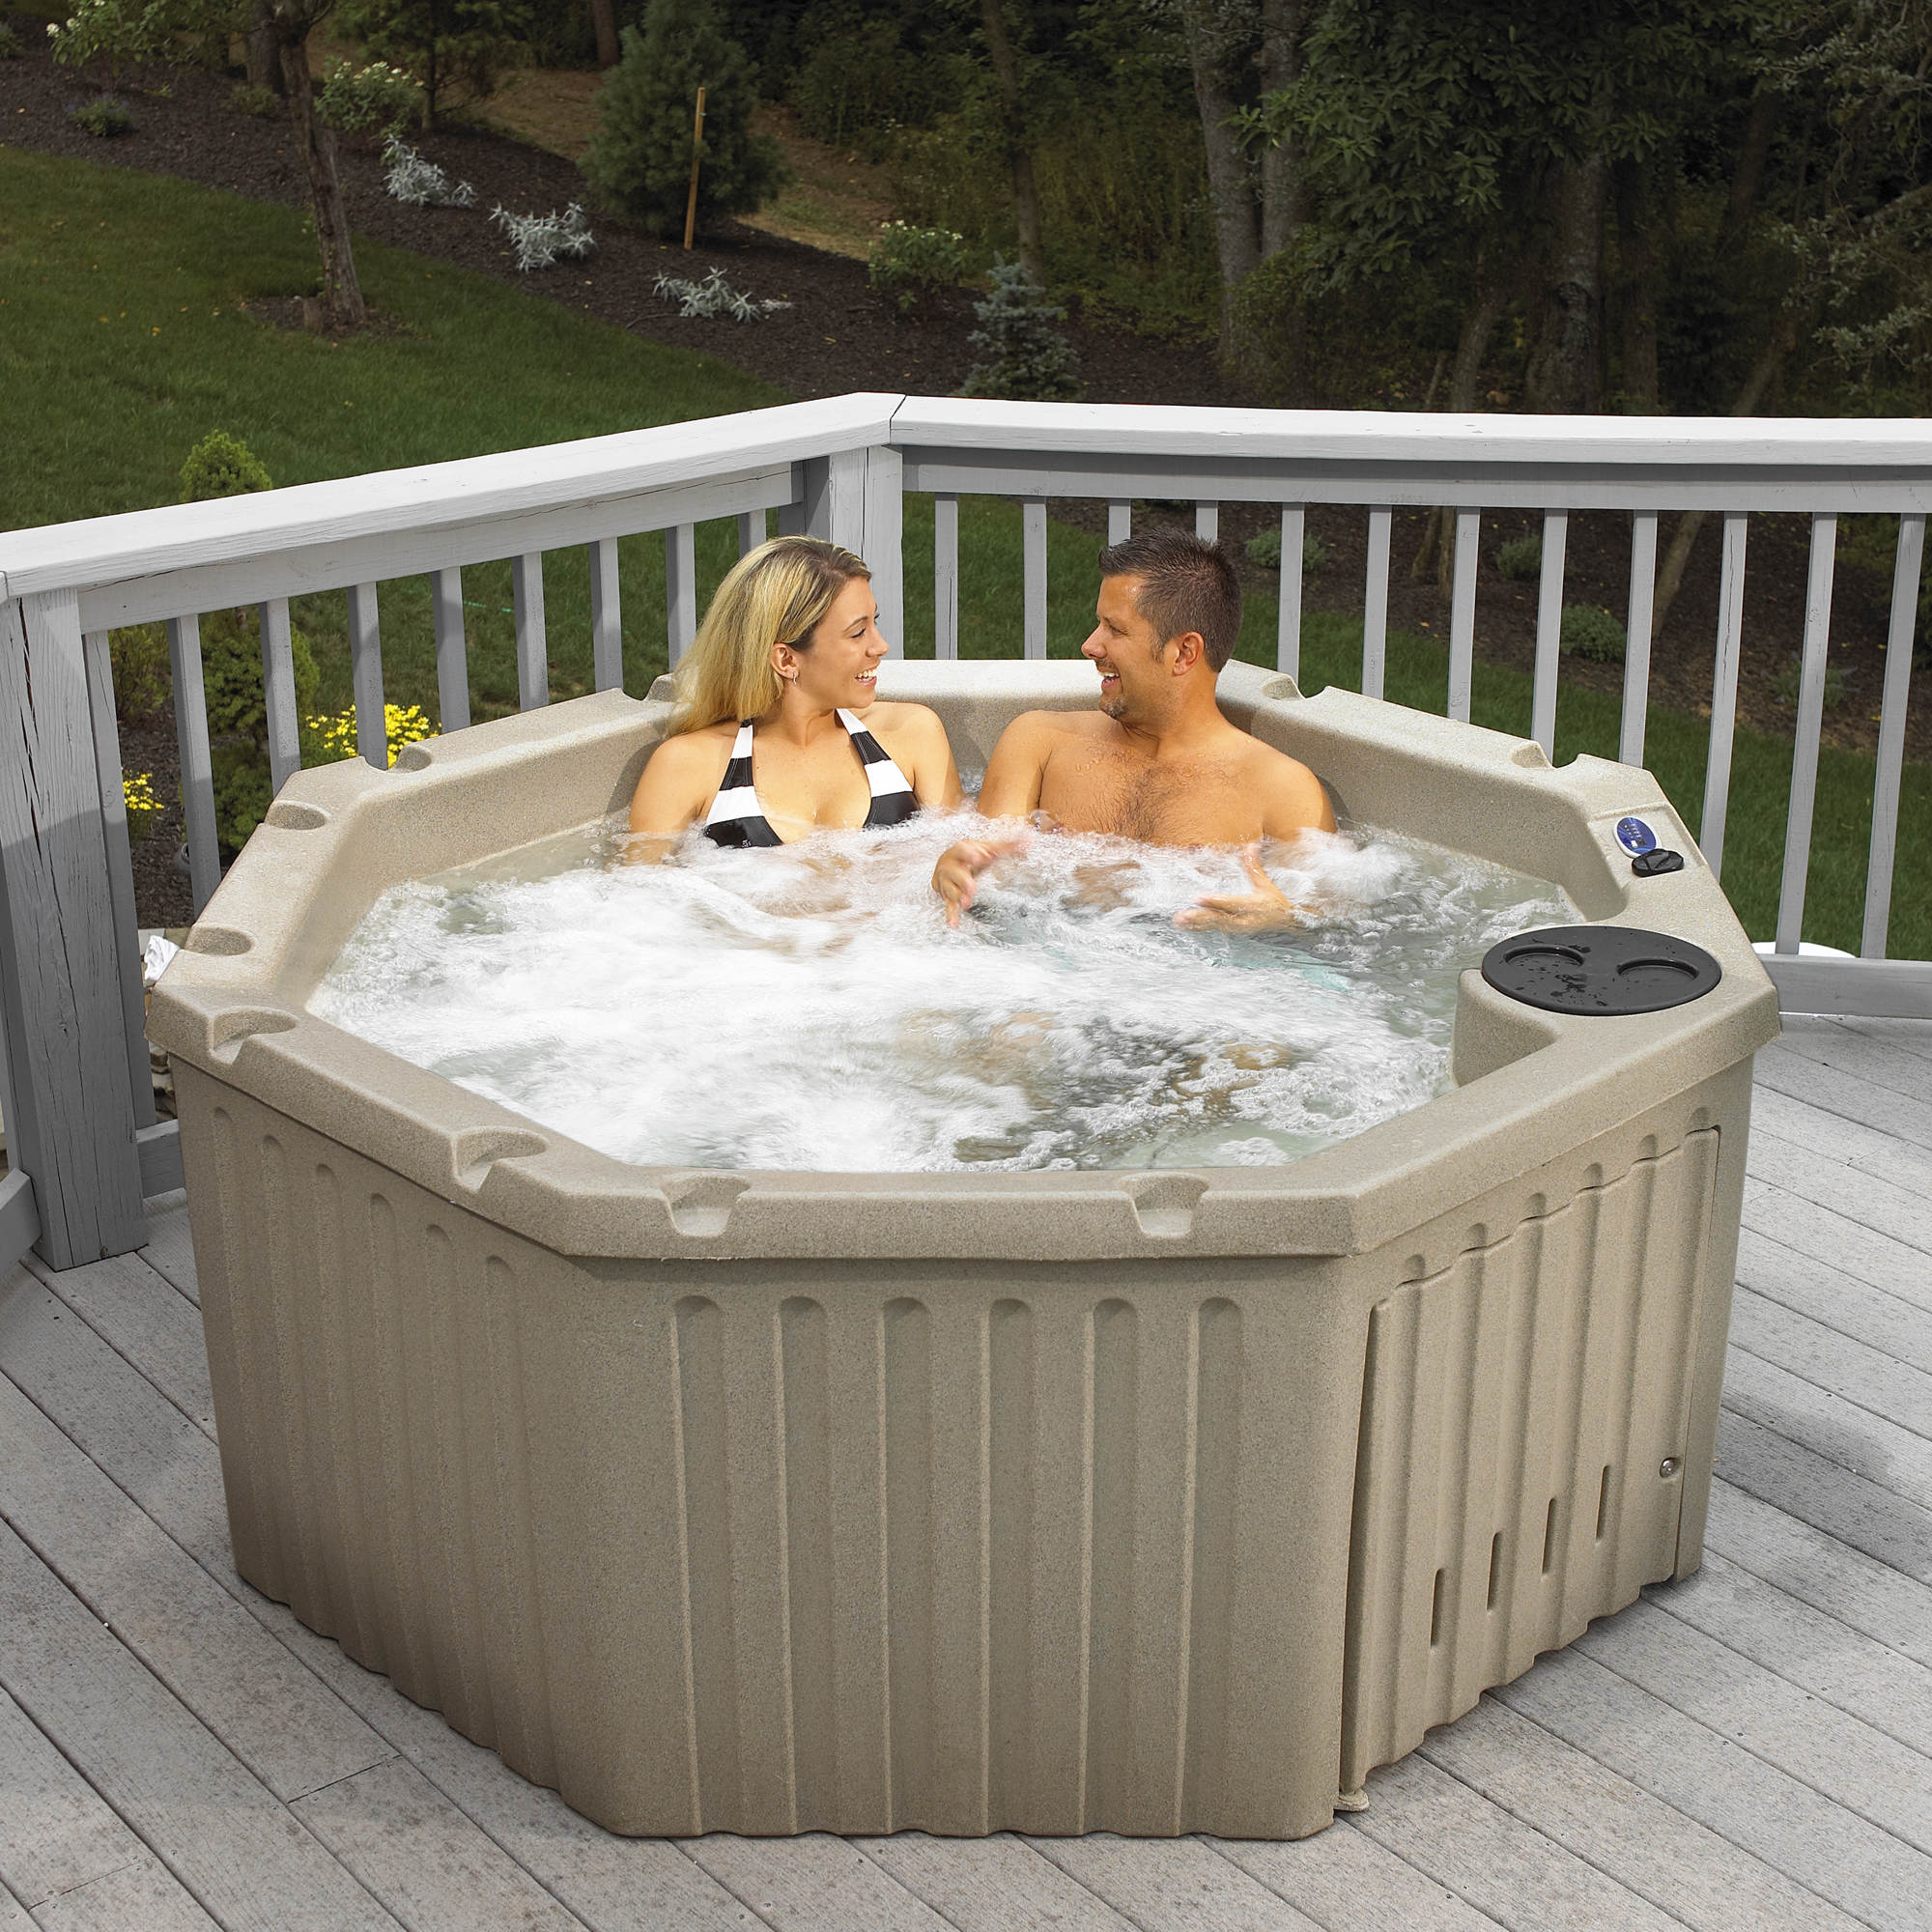 tub sale bath for jets person cons vegas pros hotels las and tubs jacuzzi in whirlpool bathtubs parts